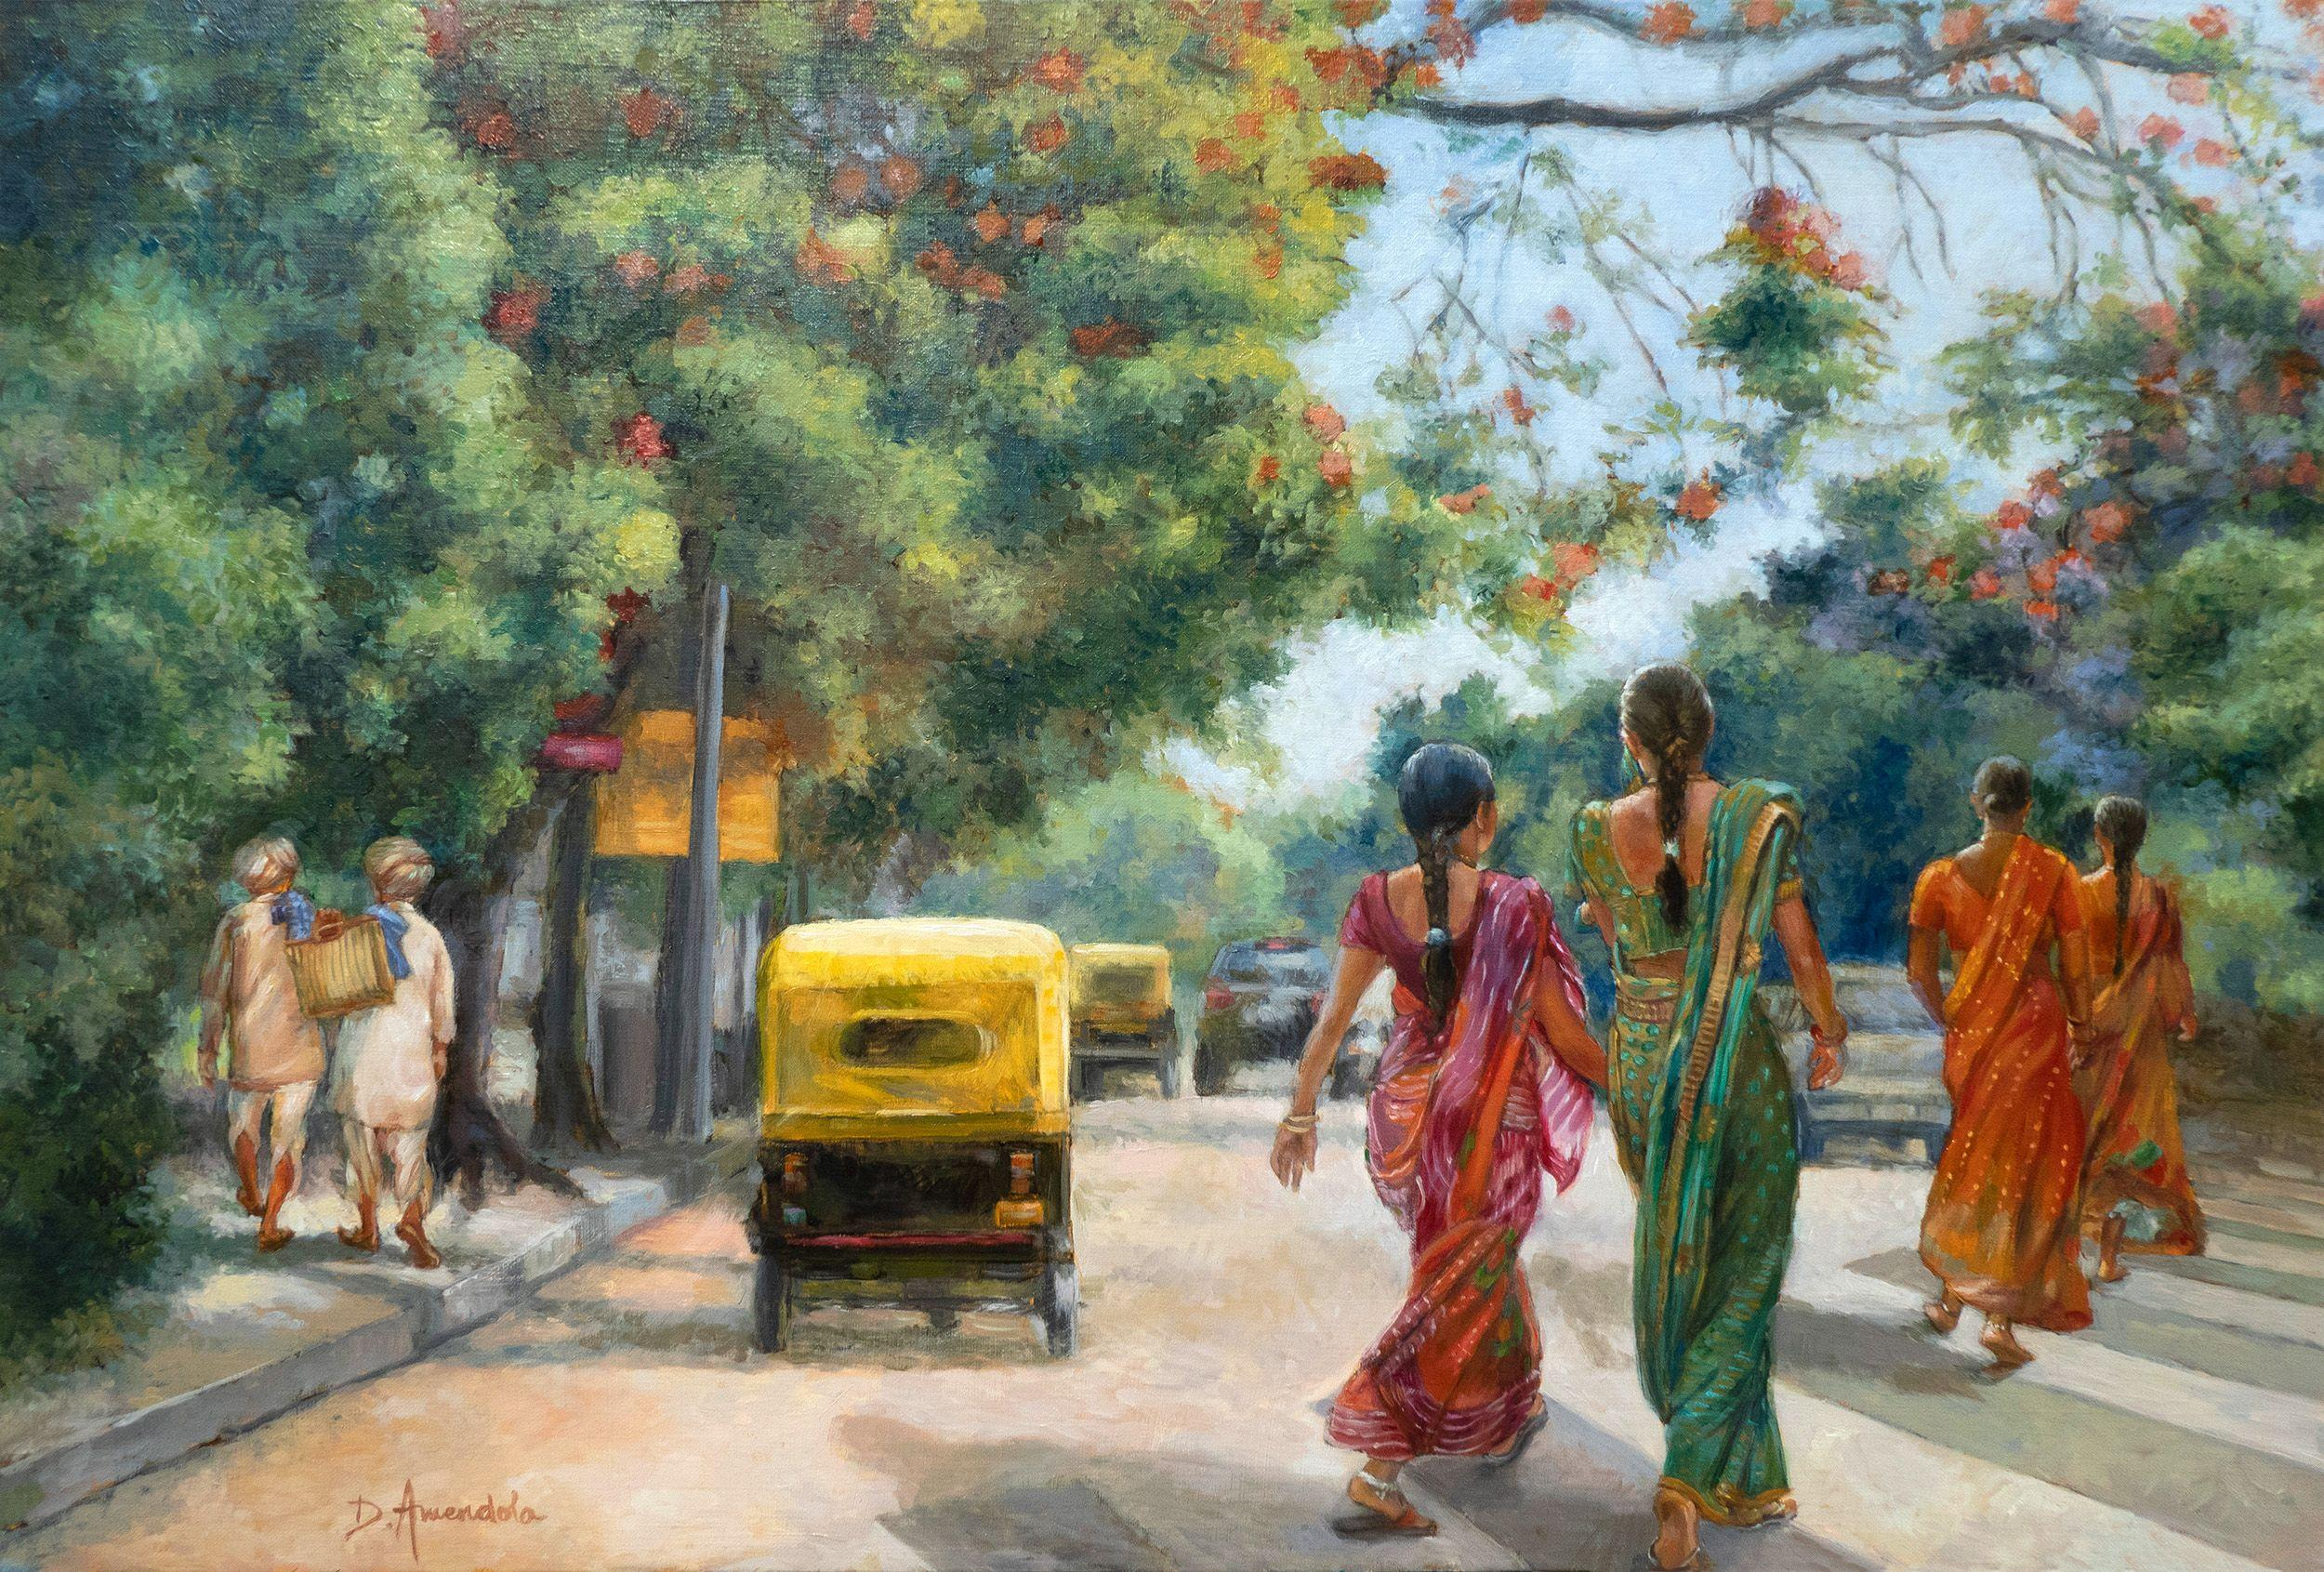 India Street Scene In Flowery Bangalore, Painting, Oil on Canvas